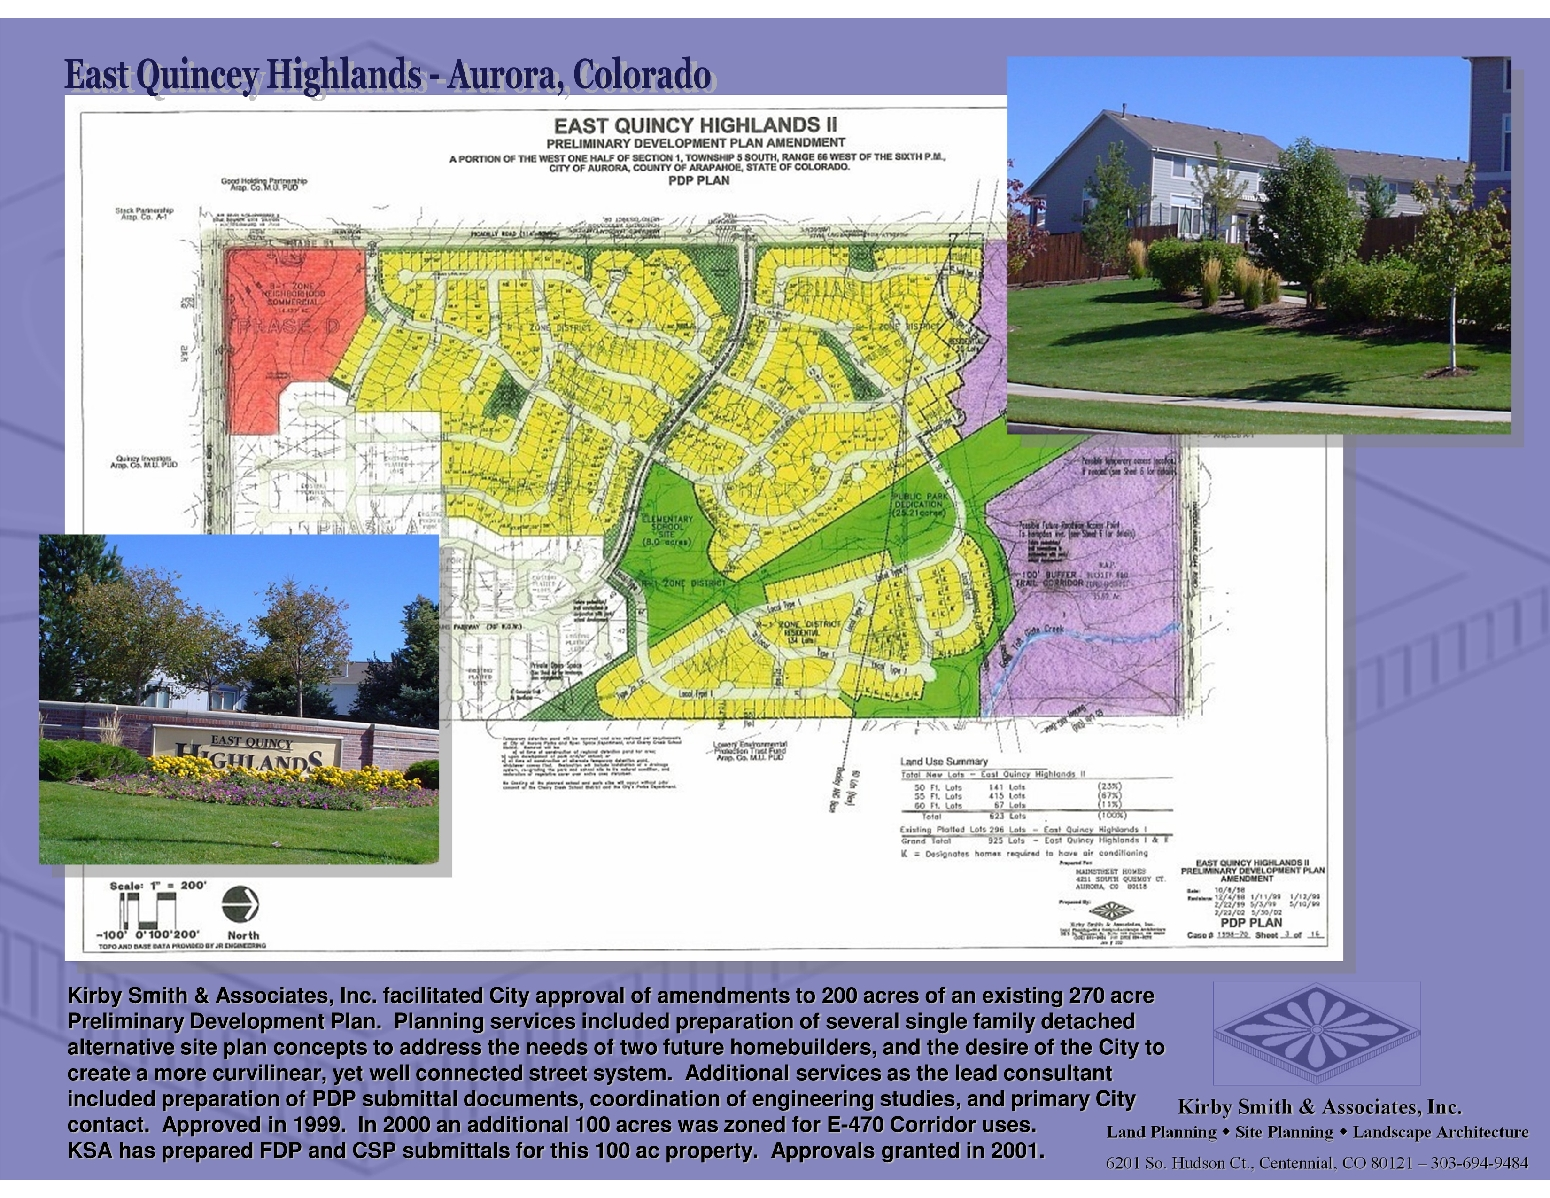 Kirby Smith & Associates, Inc. facilitated City approval of amendments to 200 acres of an existing 270 acre Preliminary Development Plan.  Planning services included preparation of several single family detached alternative site plan concepts to address the needs of two future homebuilders, and the desire of the City to create a more curvilinear, yet well connected street system.  Additional services as the lead consultant       included preparation of PDP submittal documents, coordination of engineering studies, and primary City  contact.  Approved in 1999.  In 2000 an additional 100 acres was zoned for E-470 Corridor uses.                         KSA has prepared FDP and CSP submittals for this 100 ac property.  Approvals granted in 2001.